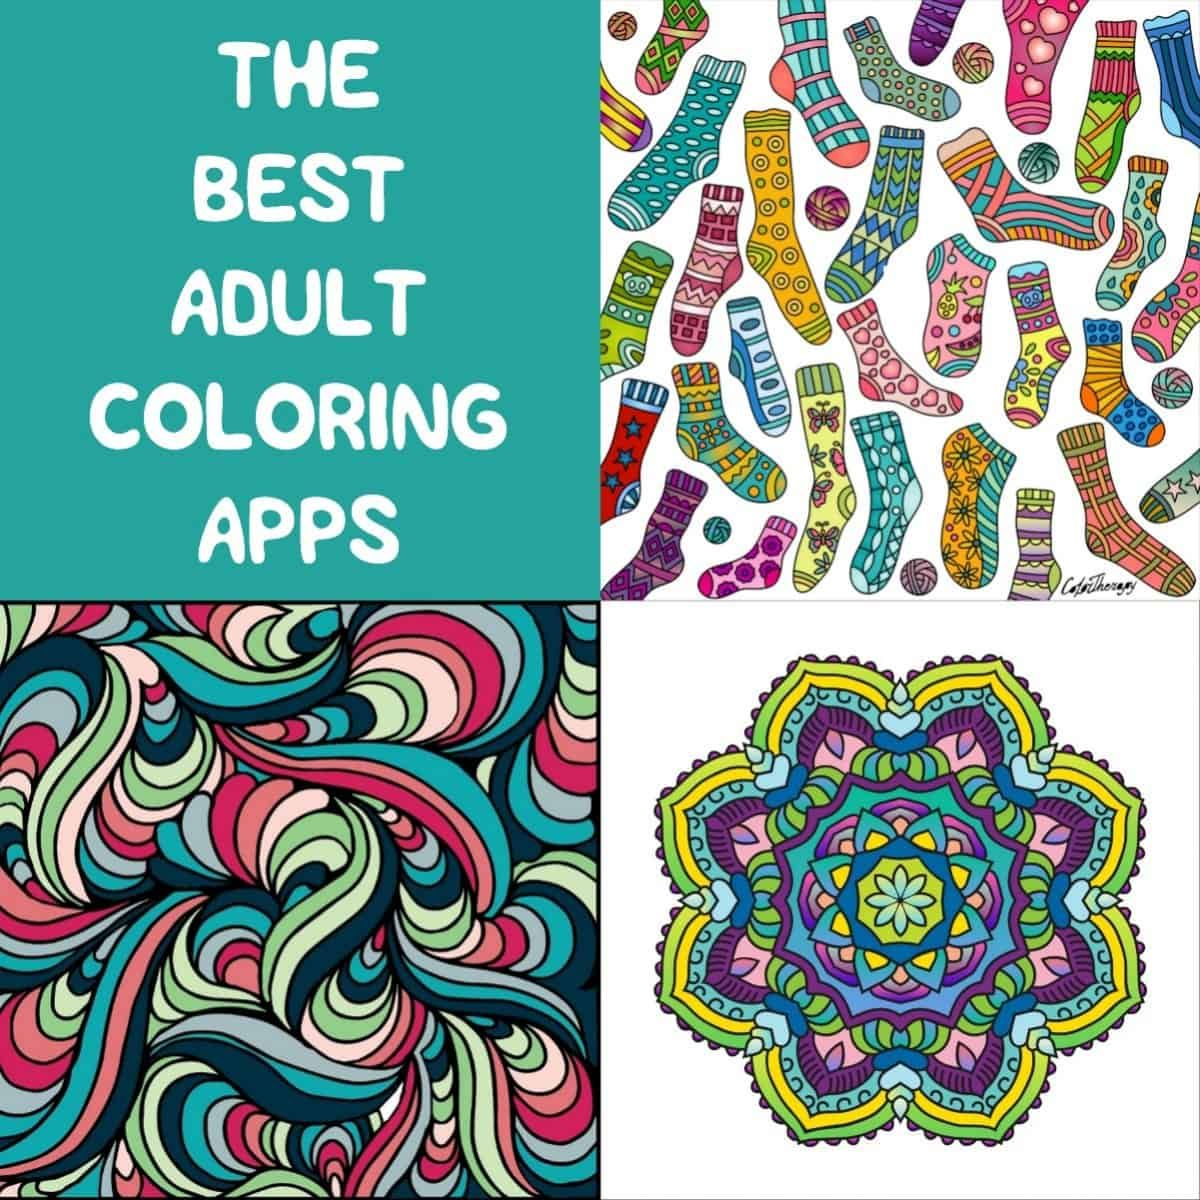 - The Best Adult Coloring Apps (Including Free!) Coloring Apps